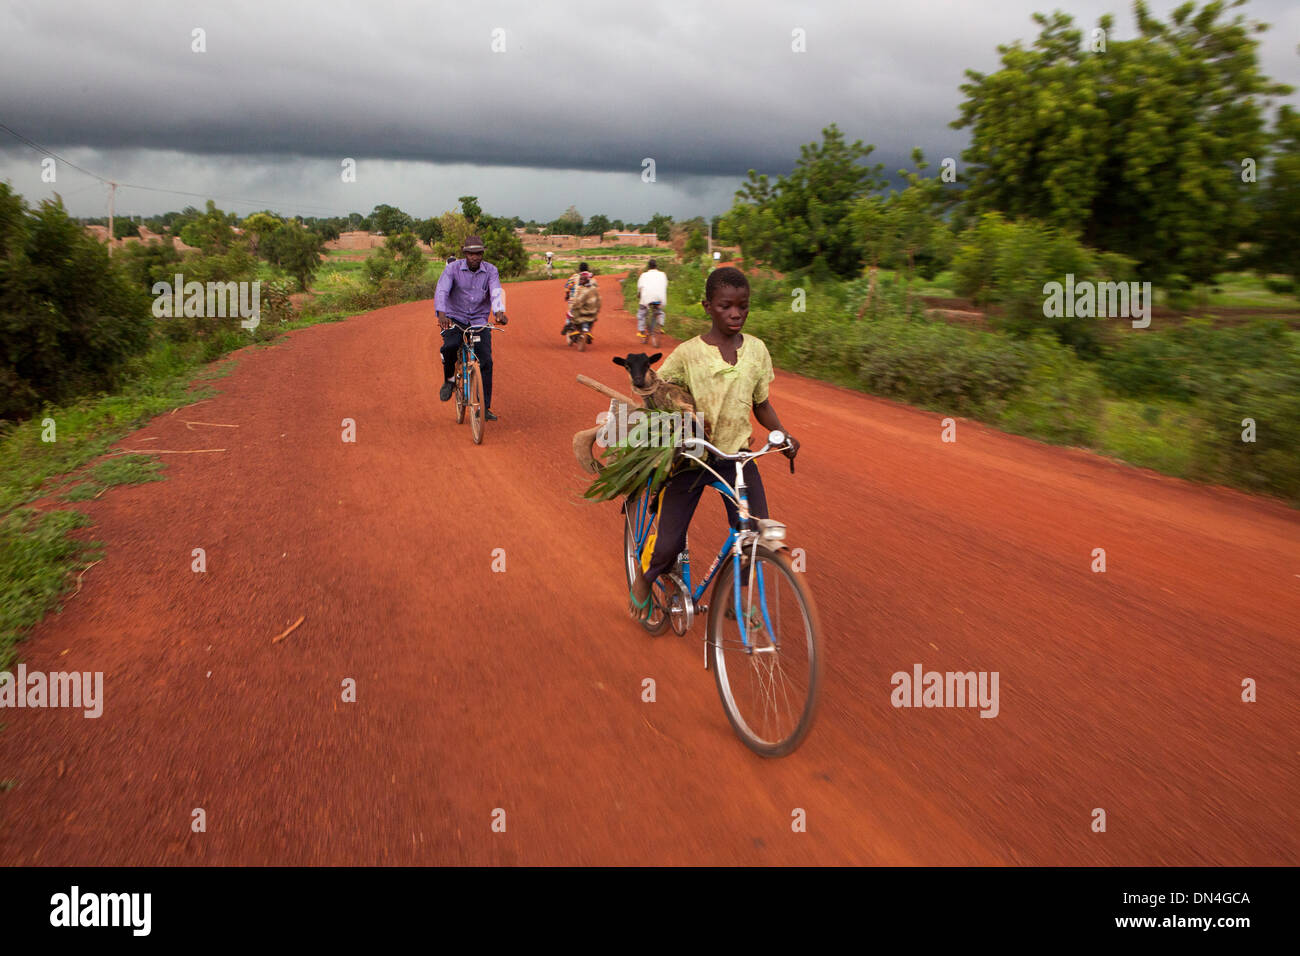 A storm under way in Dano, Burkina Faso. - Stock Image